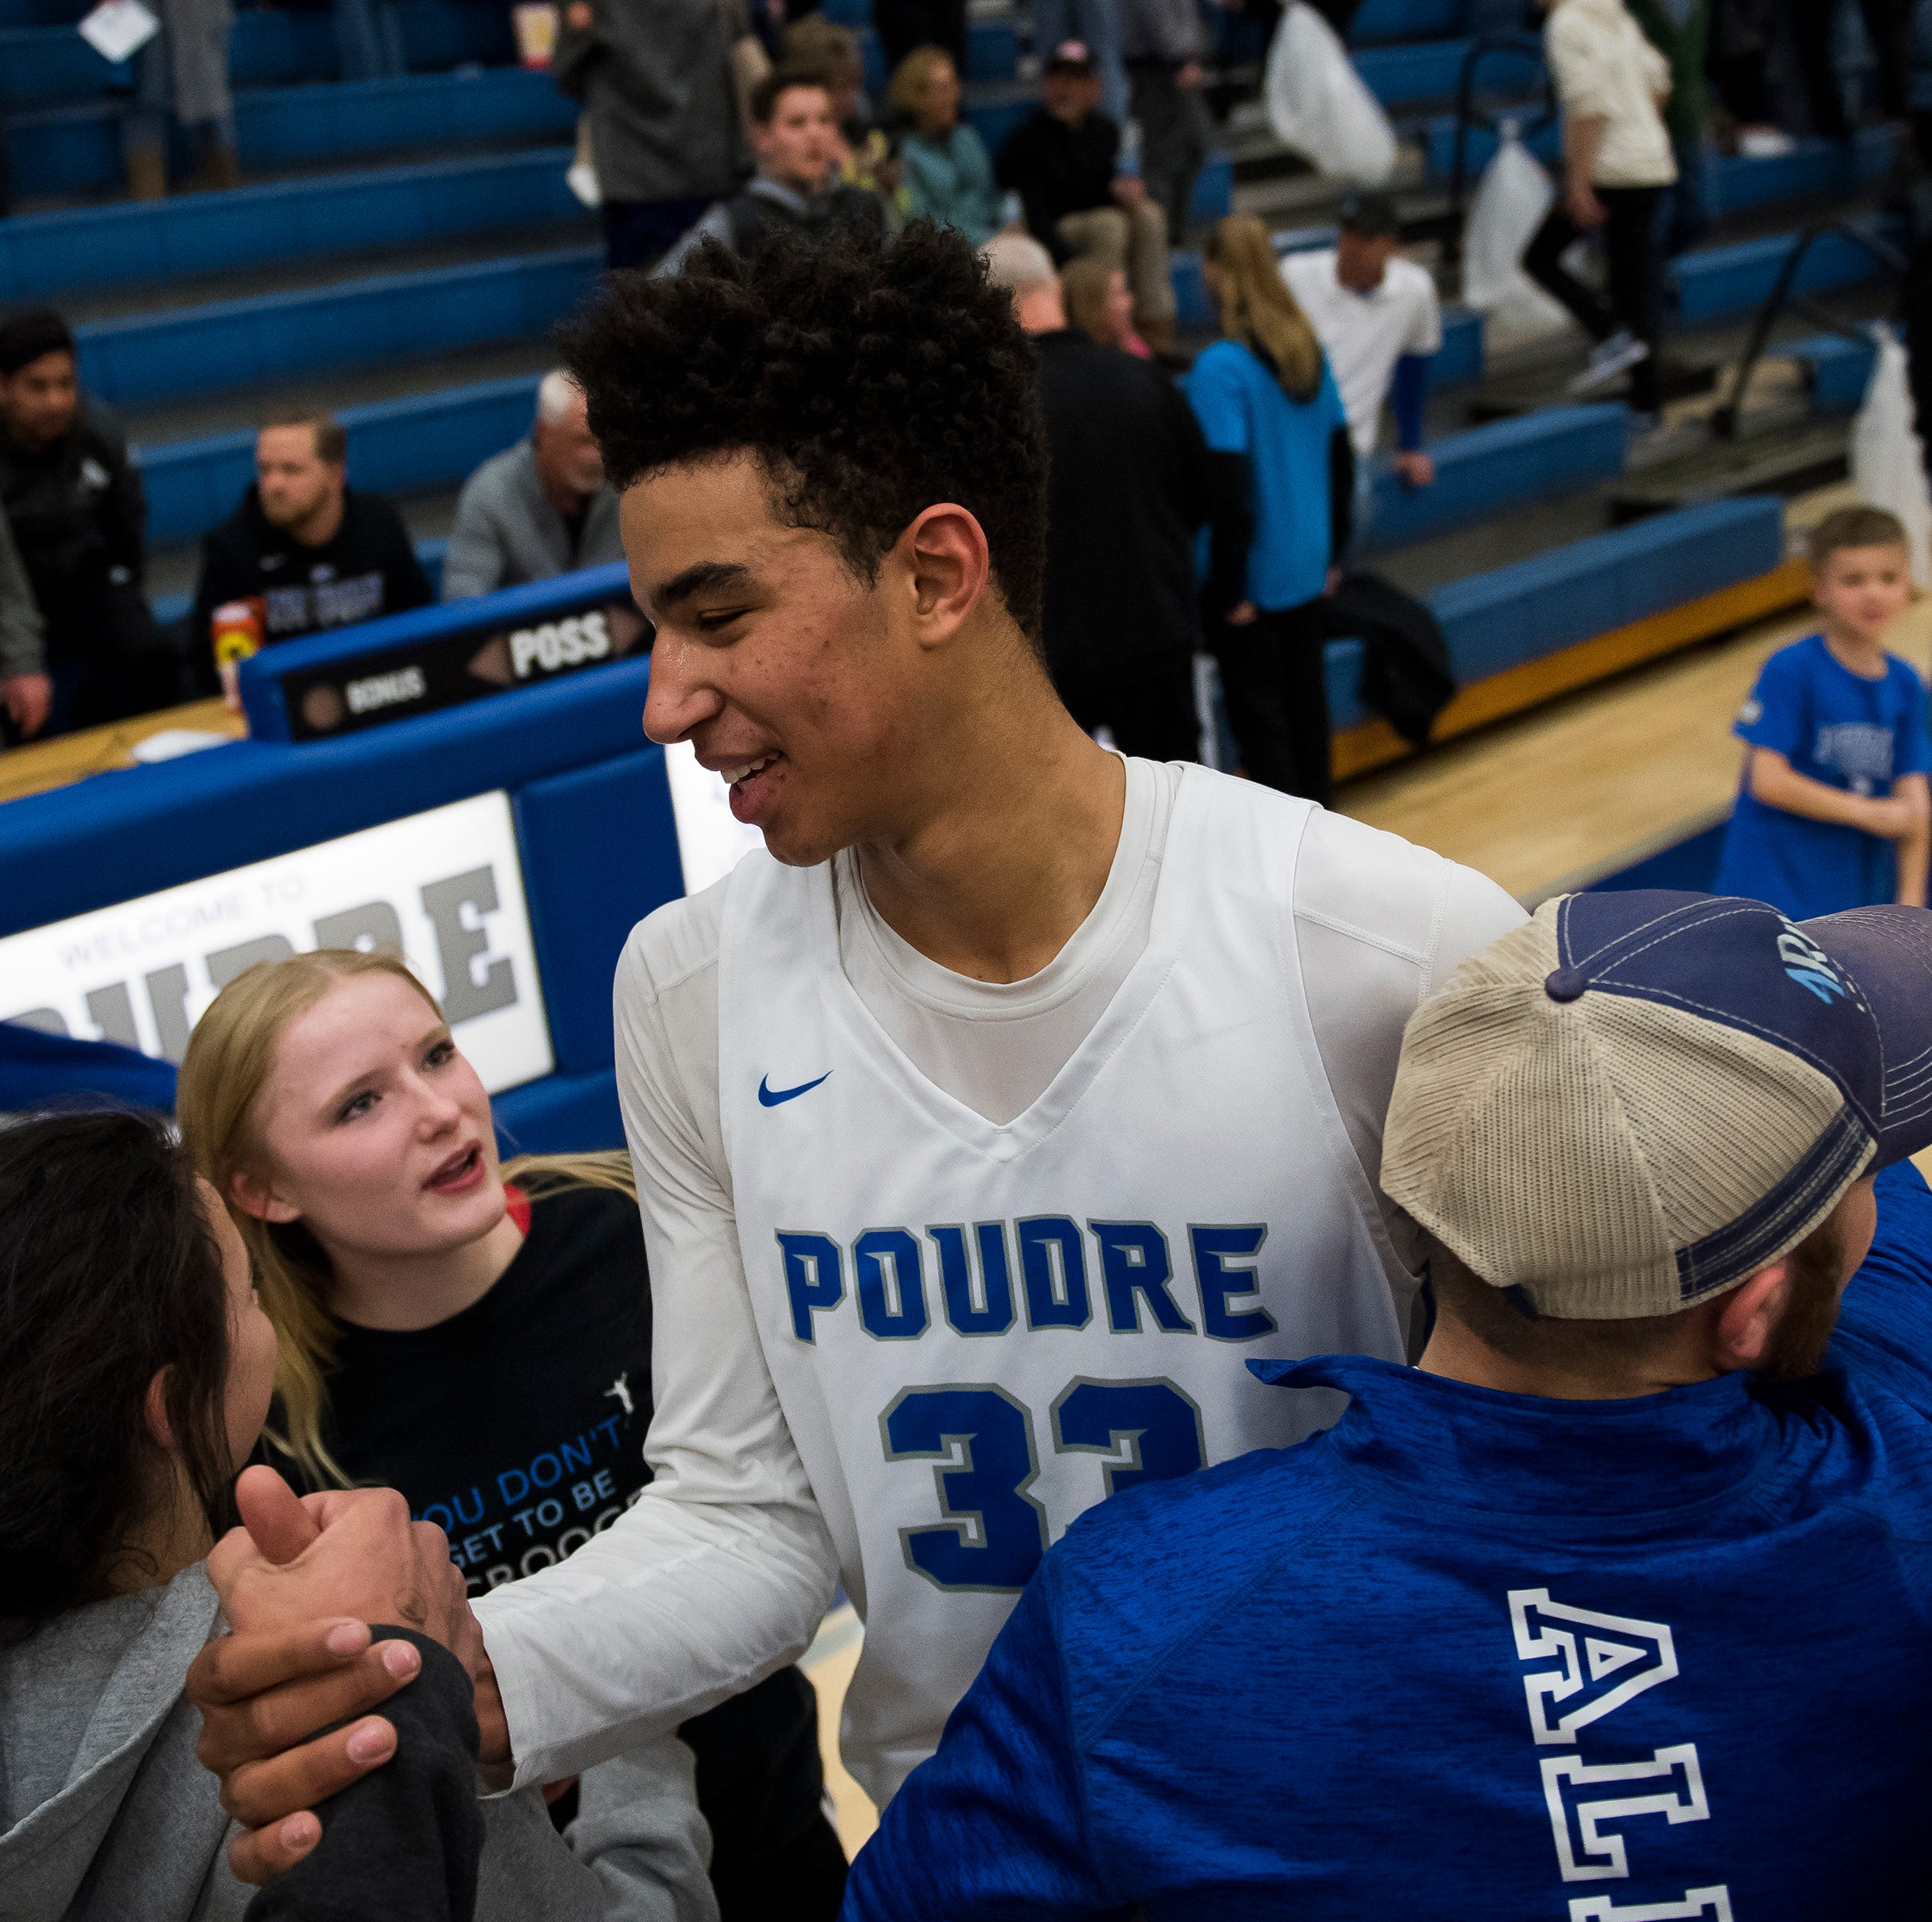 Takeaways from Poudre basketball's first home playoff win in 7 years